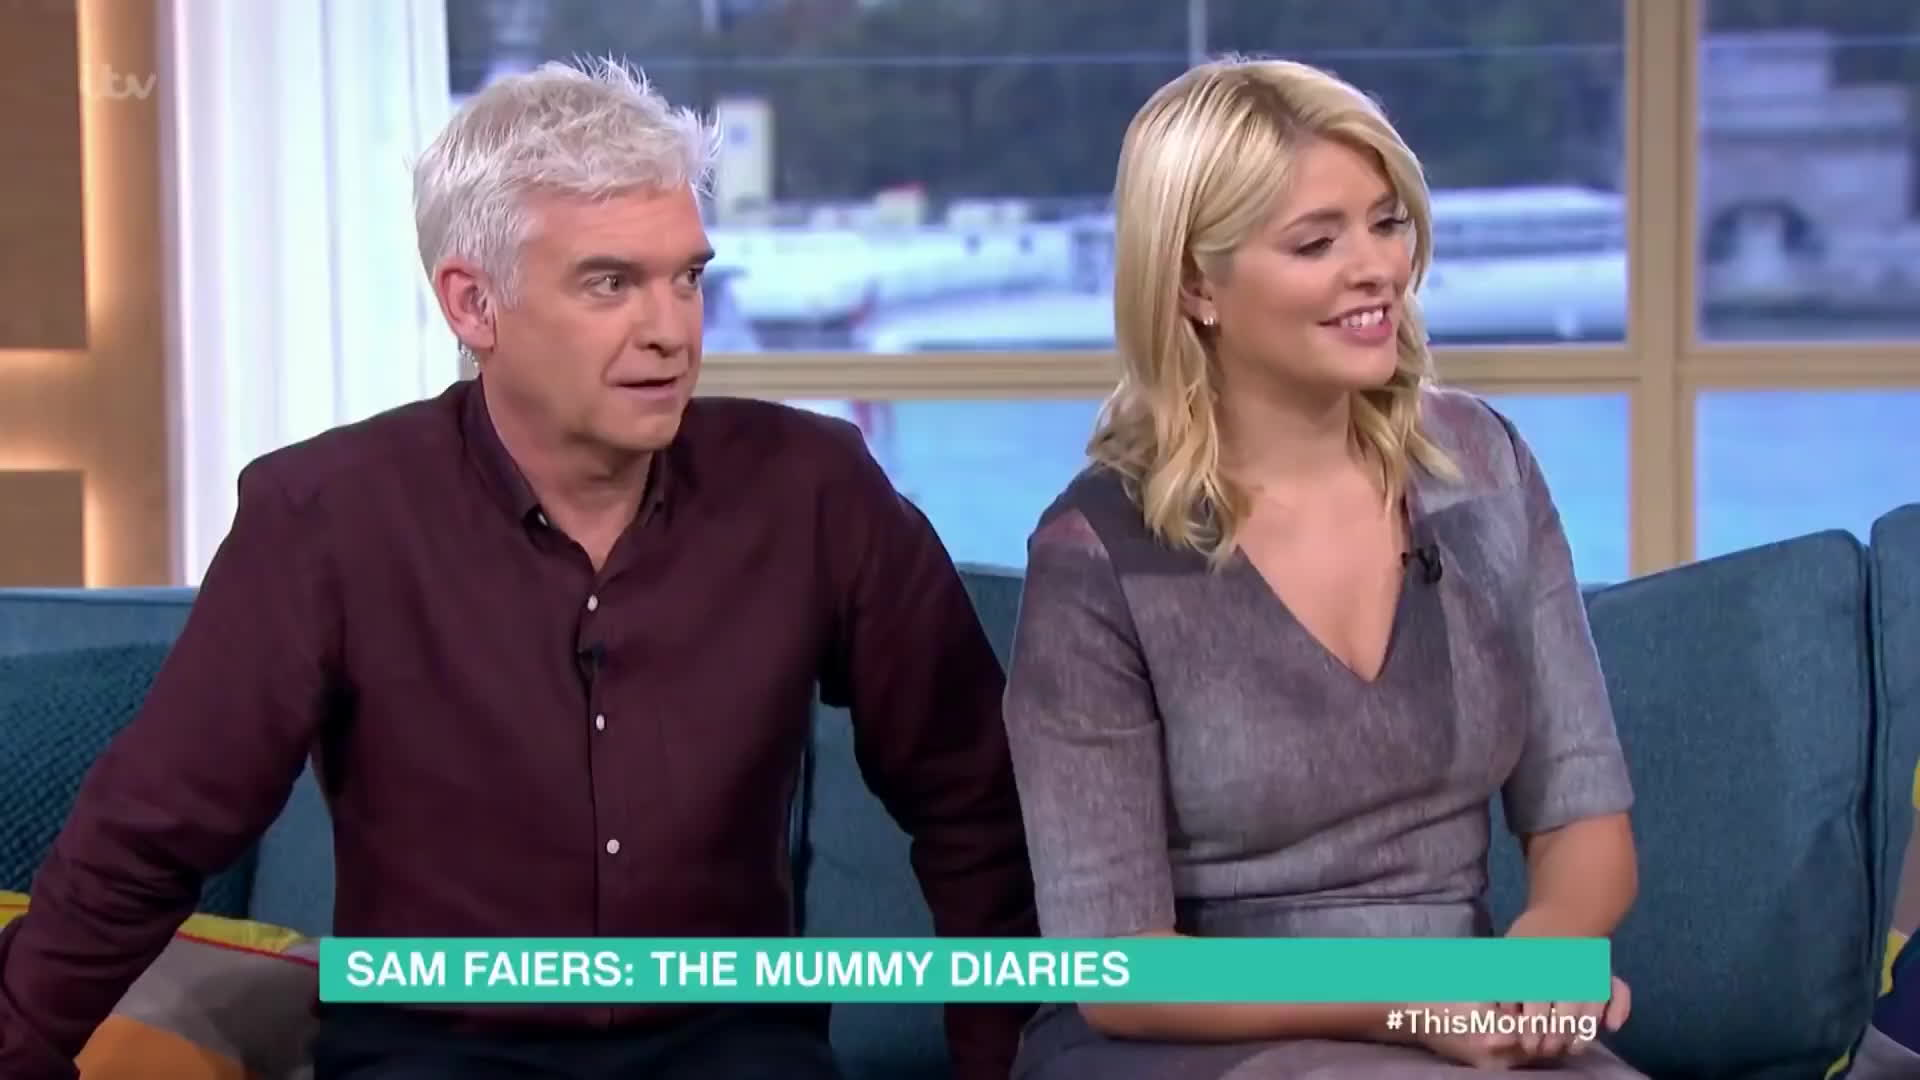 Holly Willoughby, holly willoughby butt, holly willoughby curvy, thehollywilloughby, HUGE Juicy Butt bending over in Tight Dress GIFs